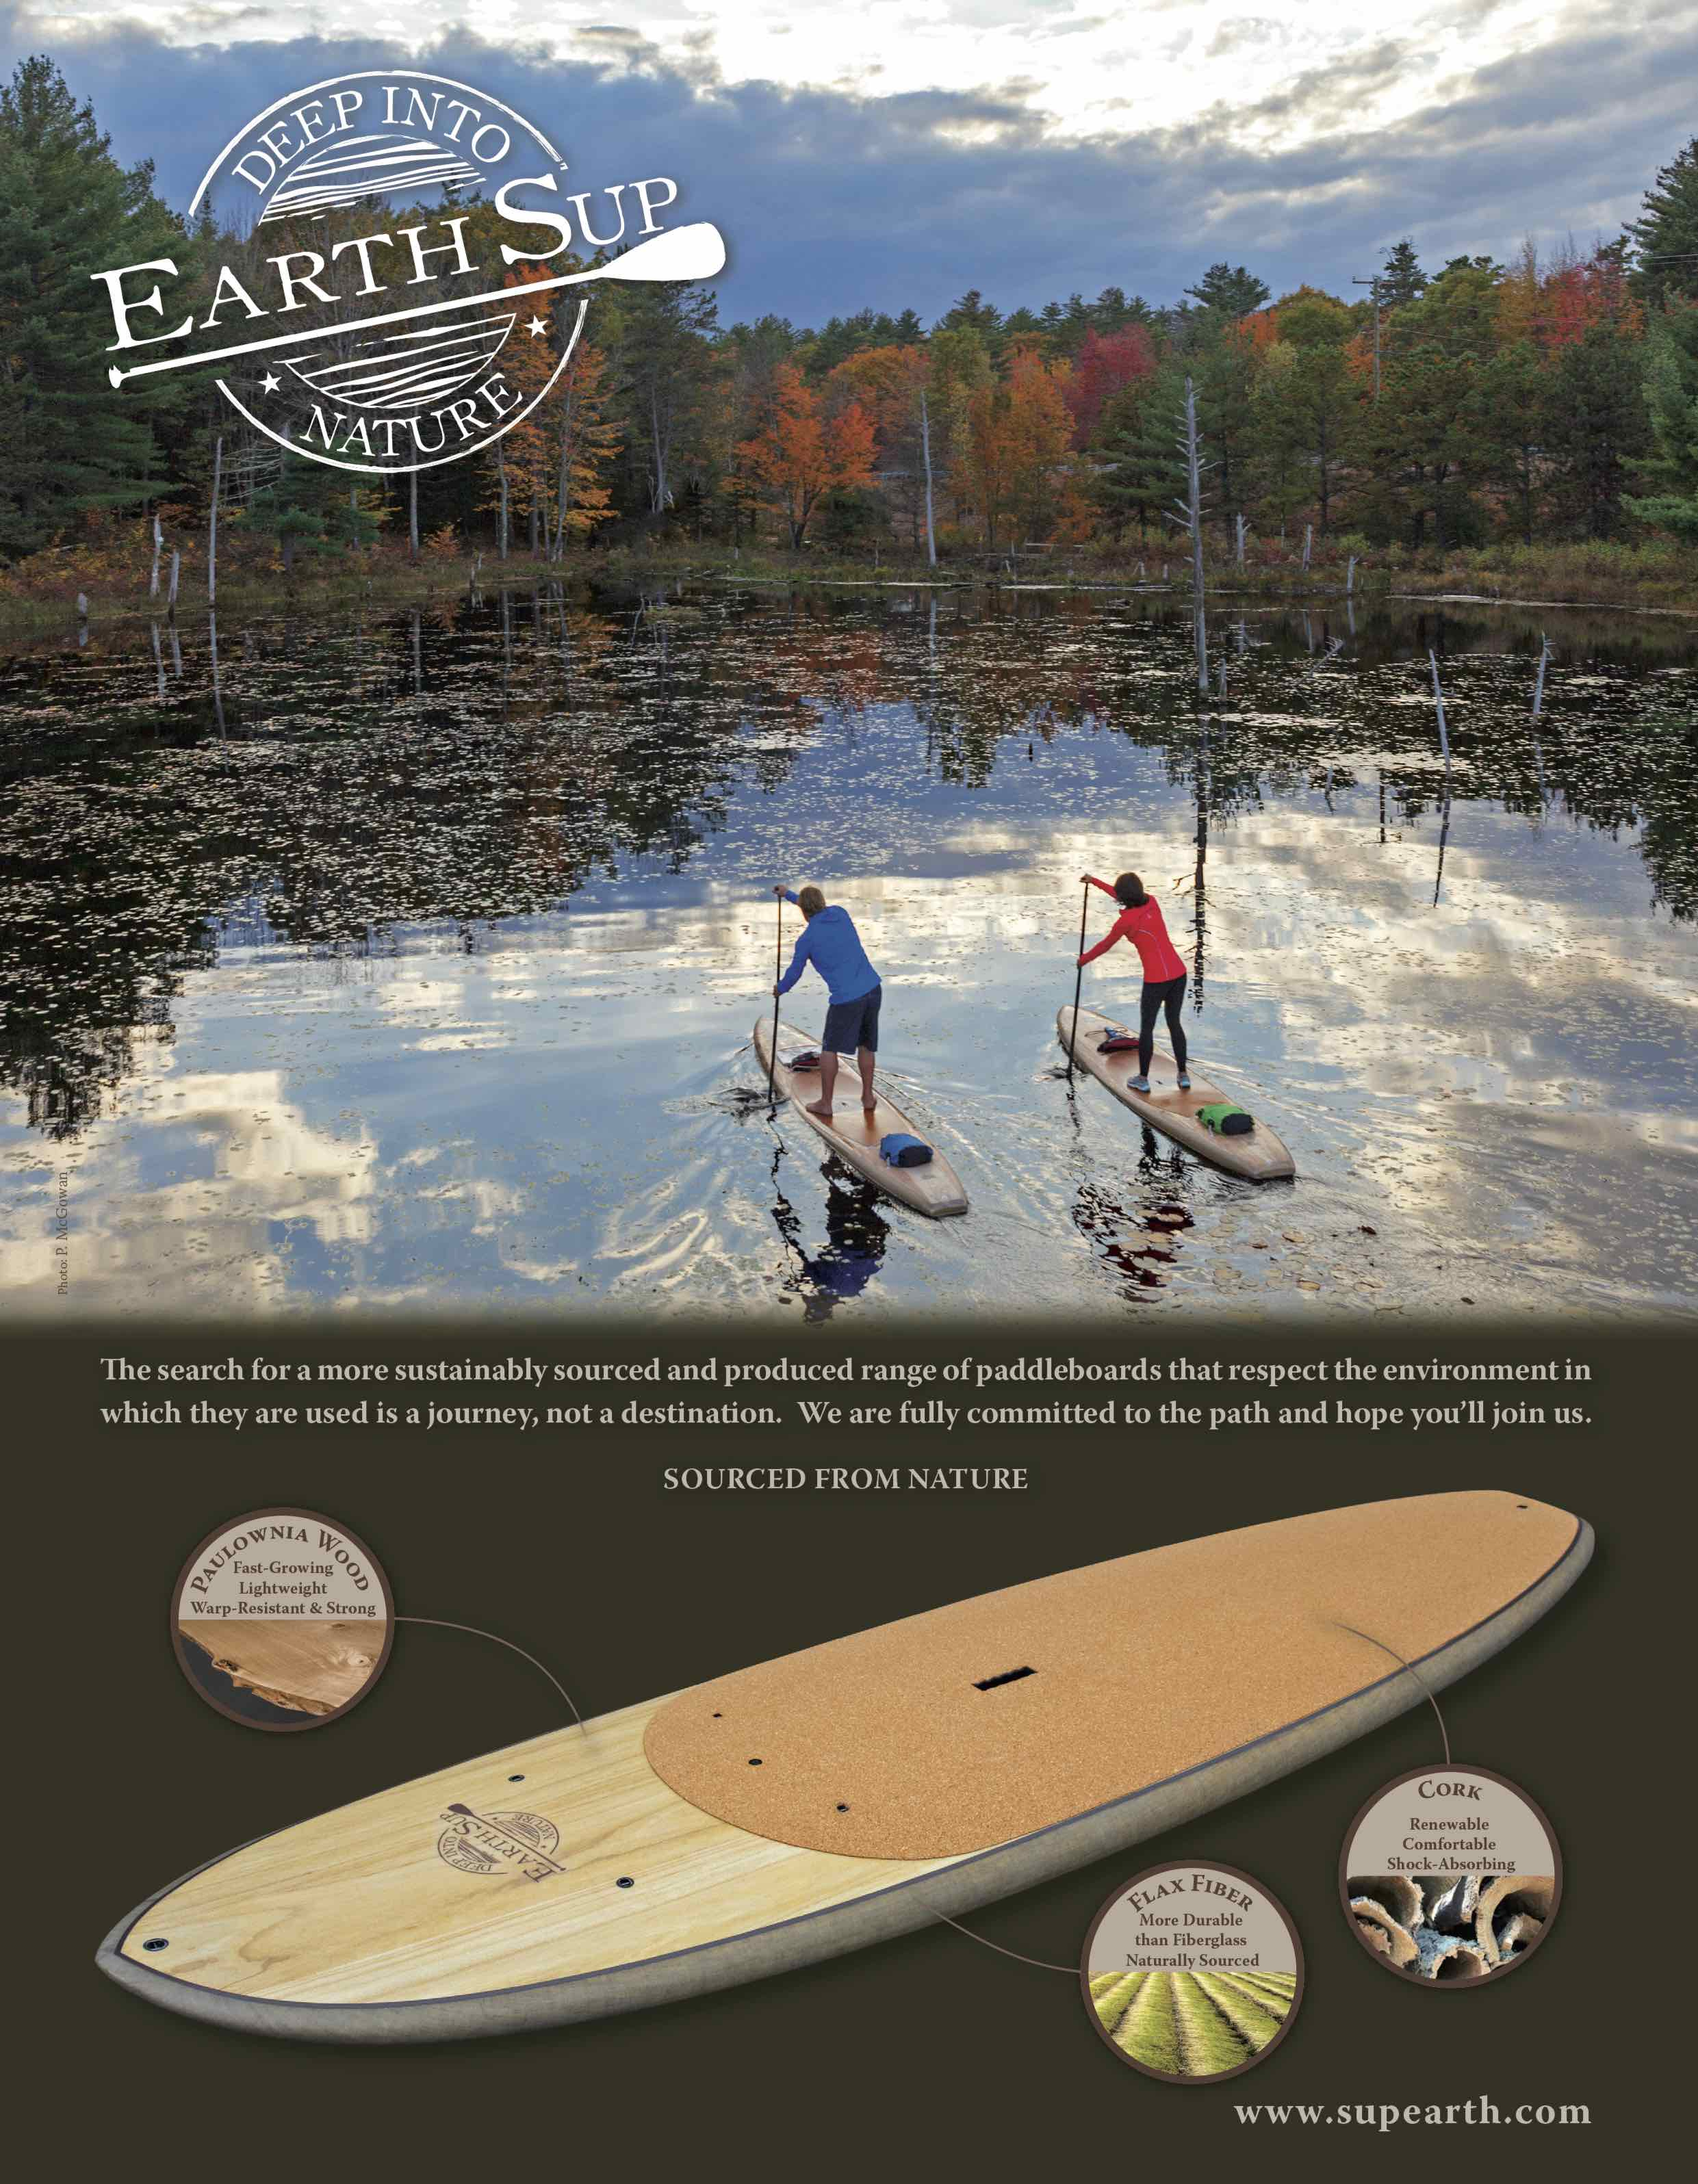 Earth SUP 83